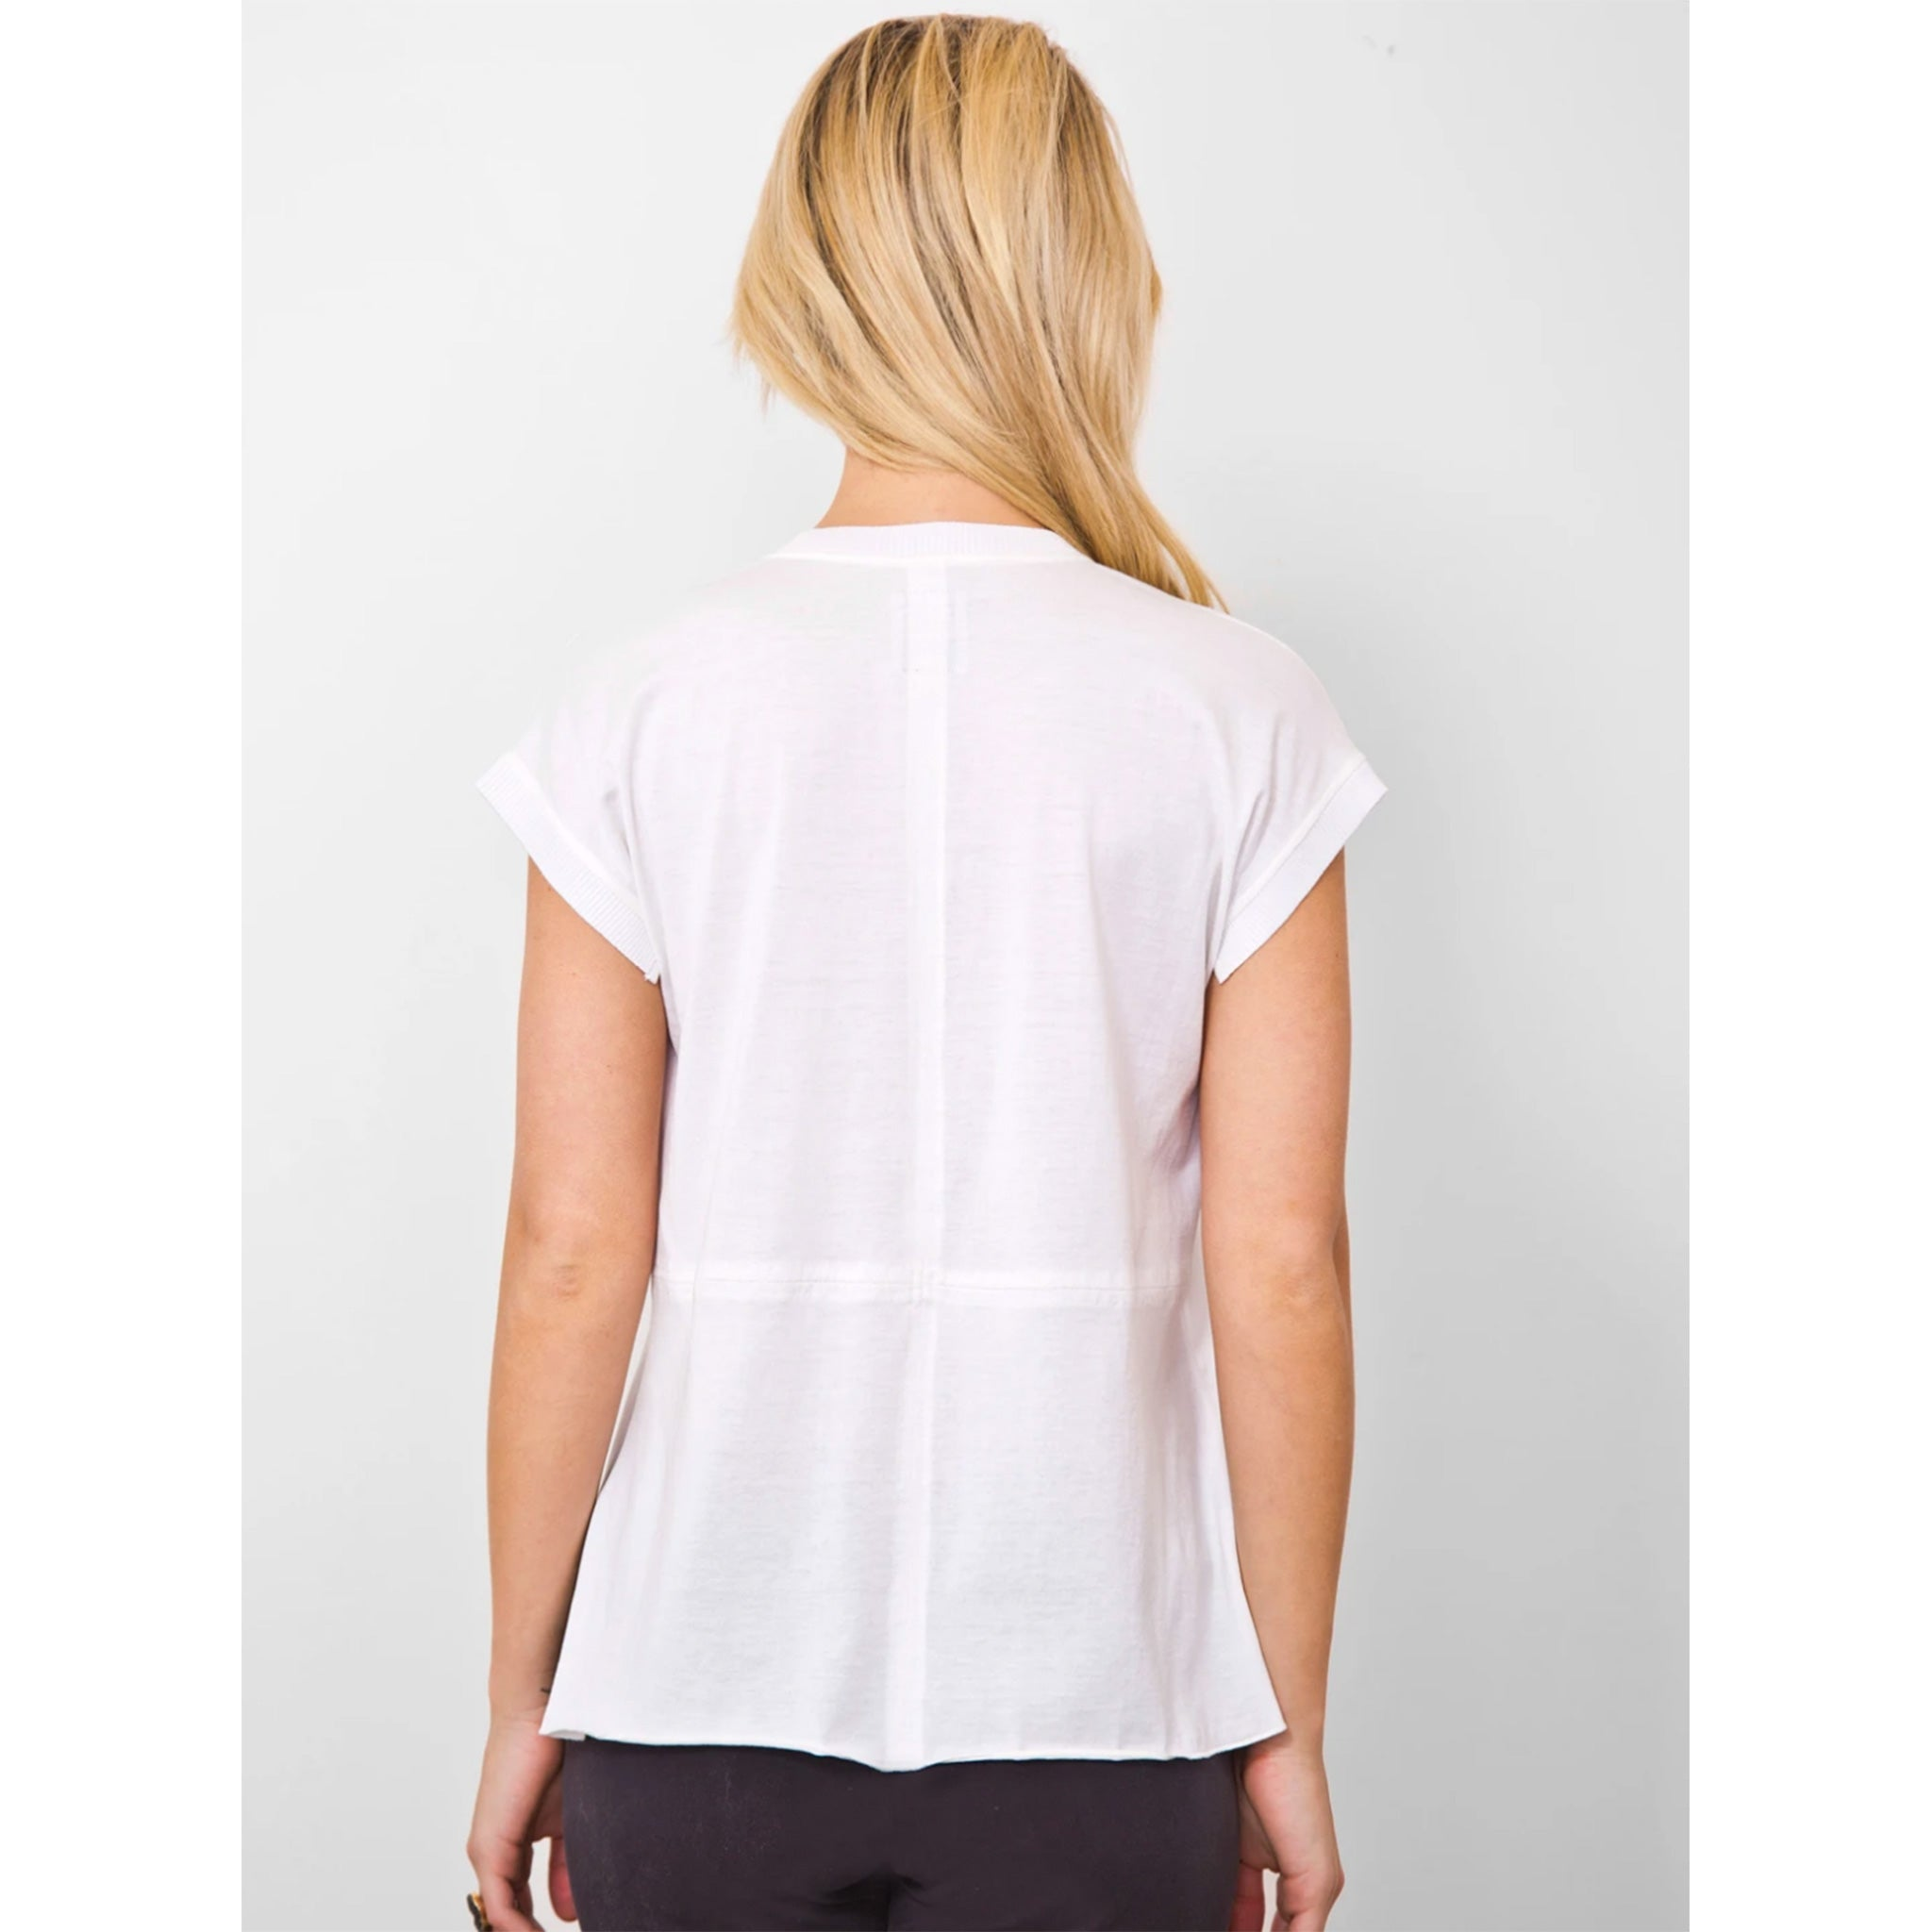 Go Silk ICONIC AnyTime Tee Shirt in White, back of shirt